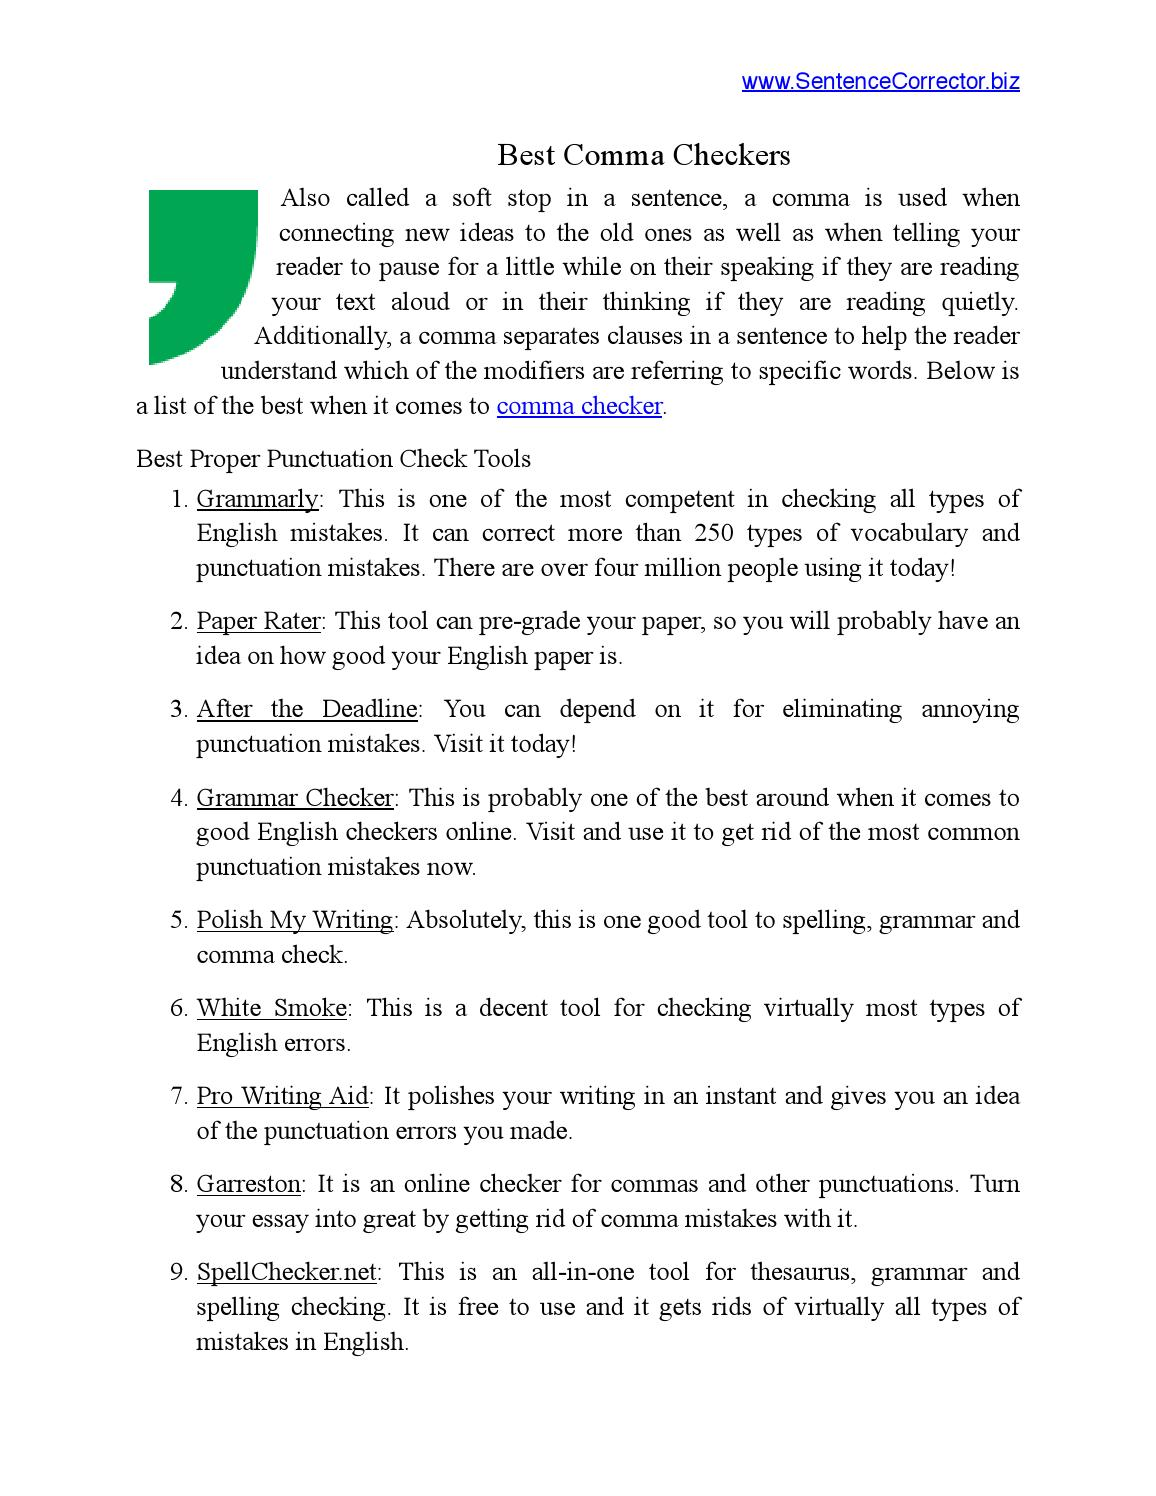 004 Page 1 Free Essay Checker Awesome Ielts Punctuation For Plagiarism Full